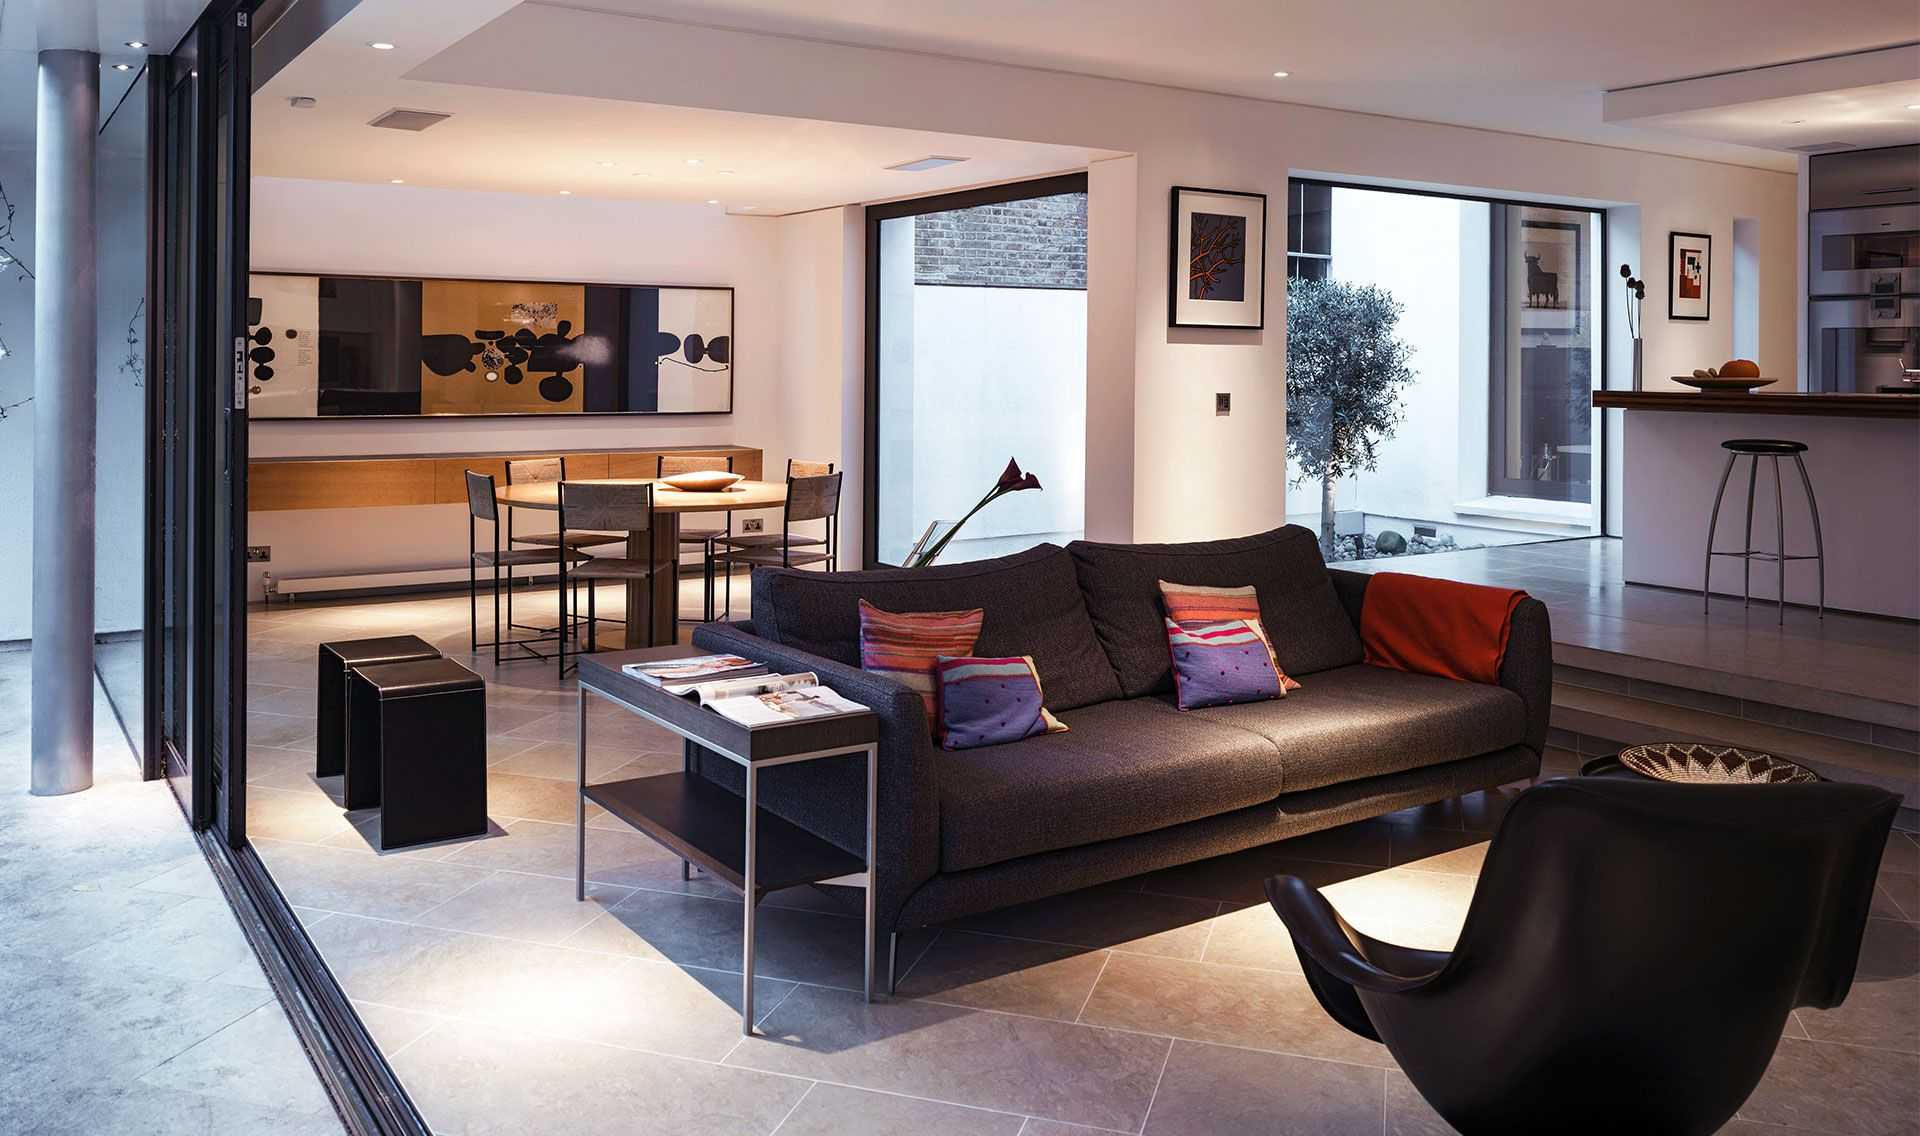 Mclean quinlan architects london winchester architecture in the town ealing london